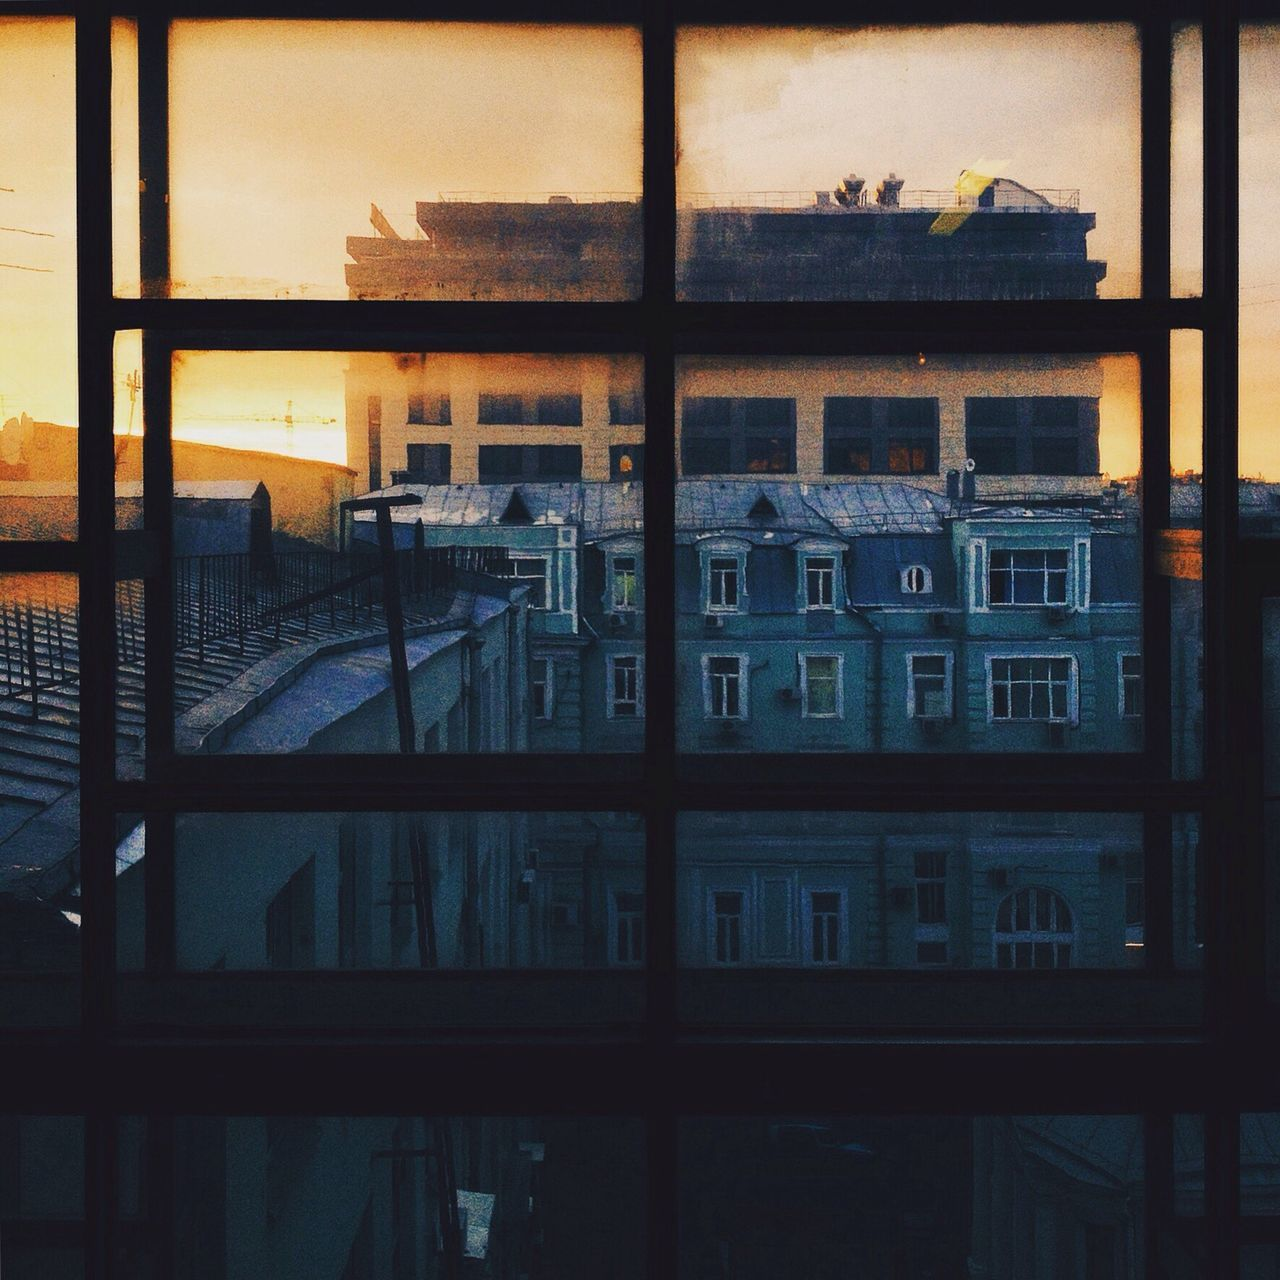 architecture, built structure, window, building exterior, no people, reflection, indoors, day, city